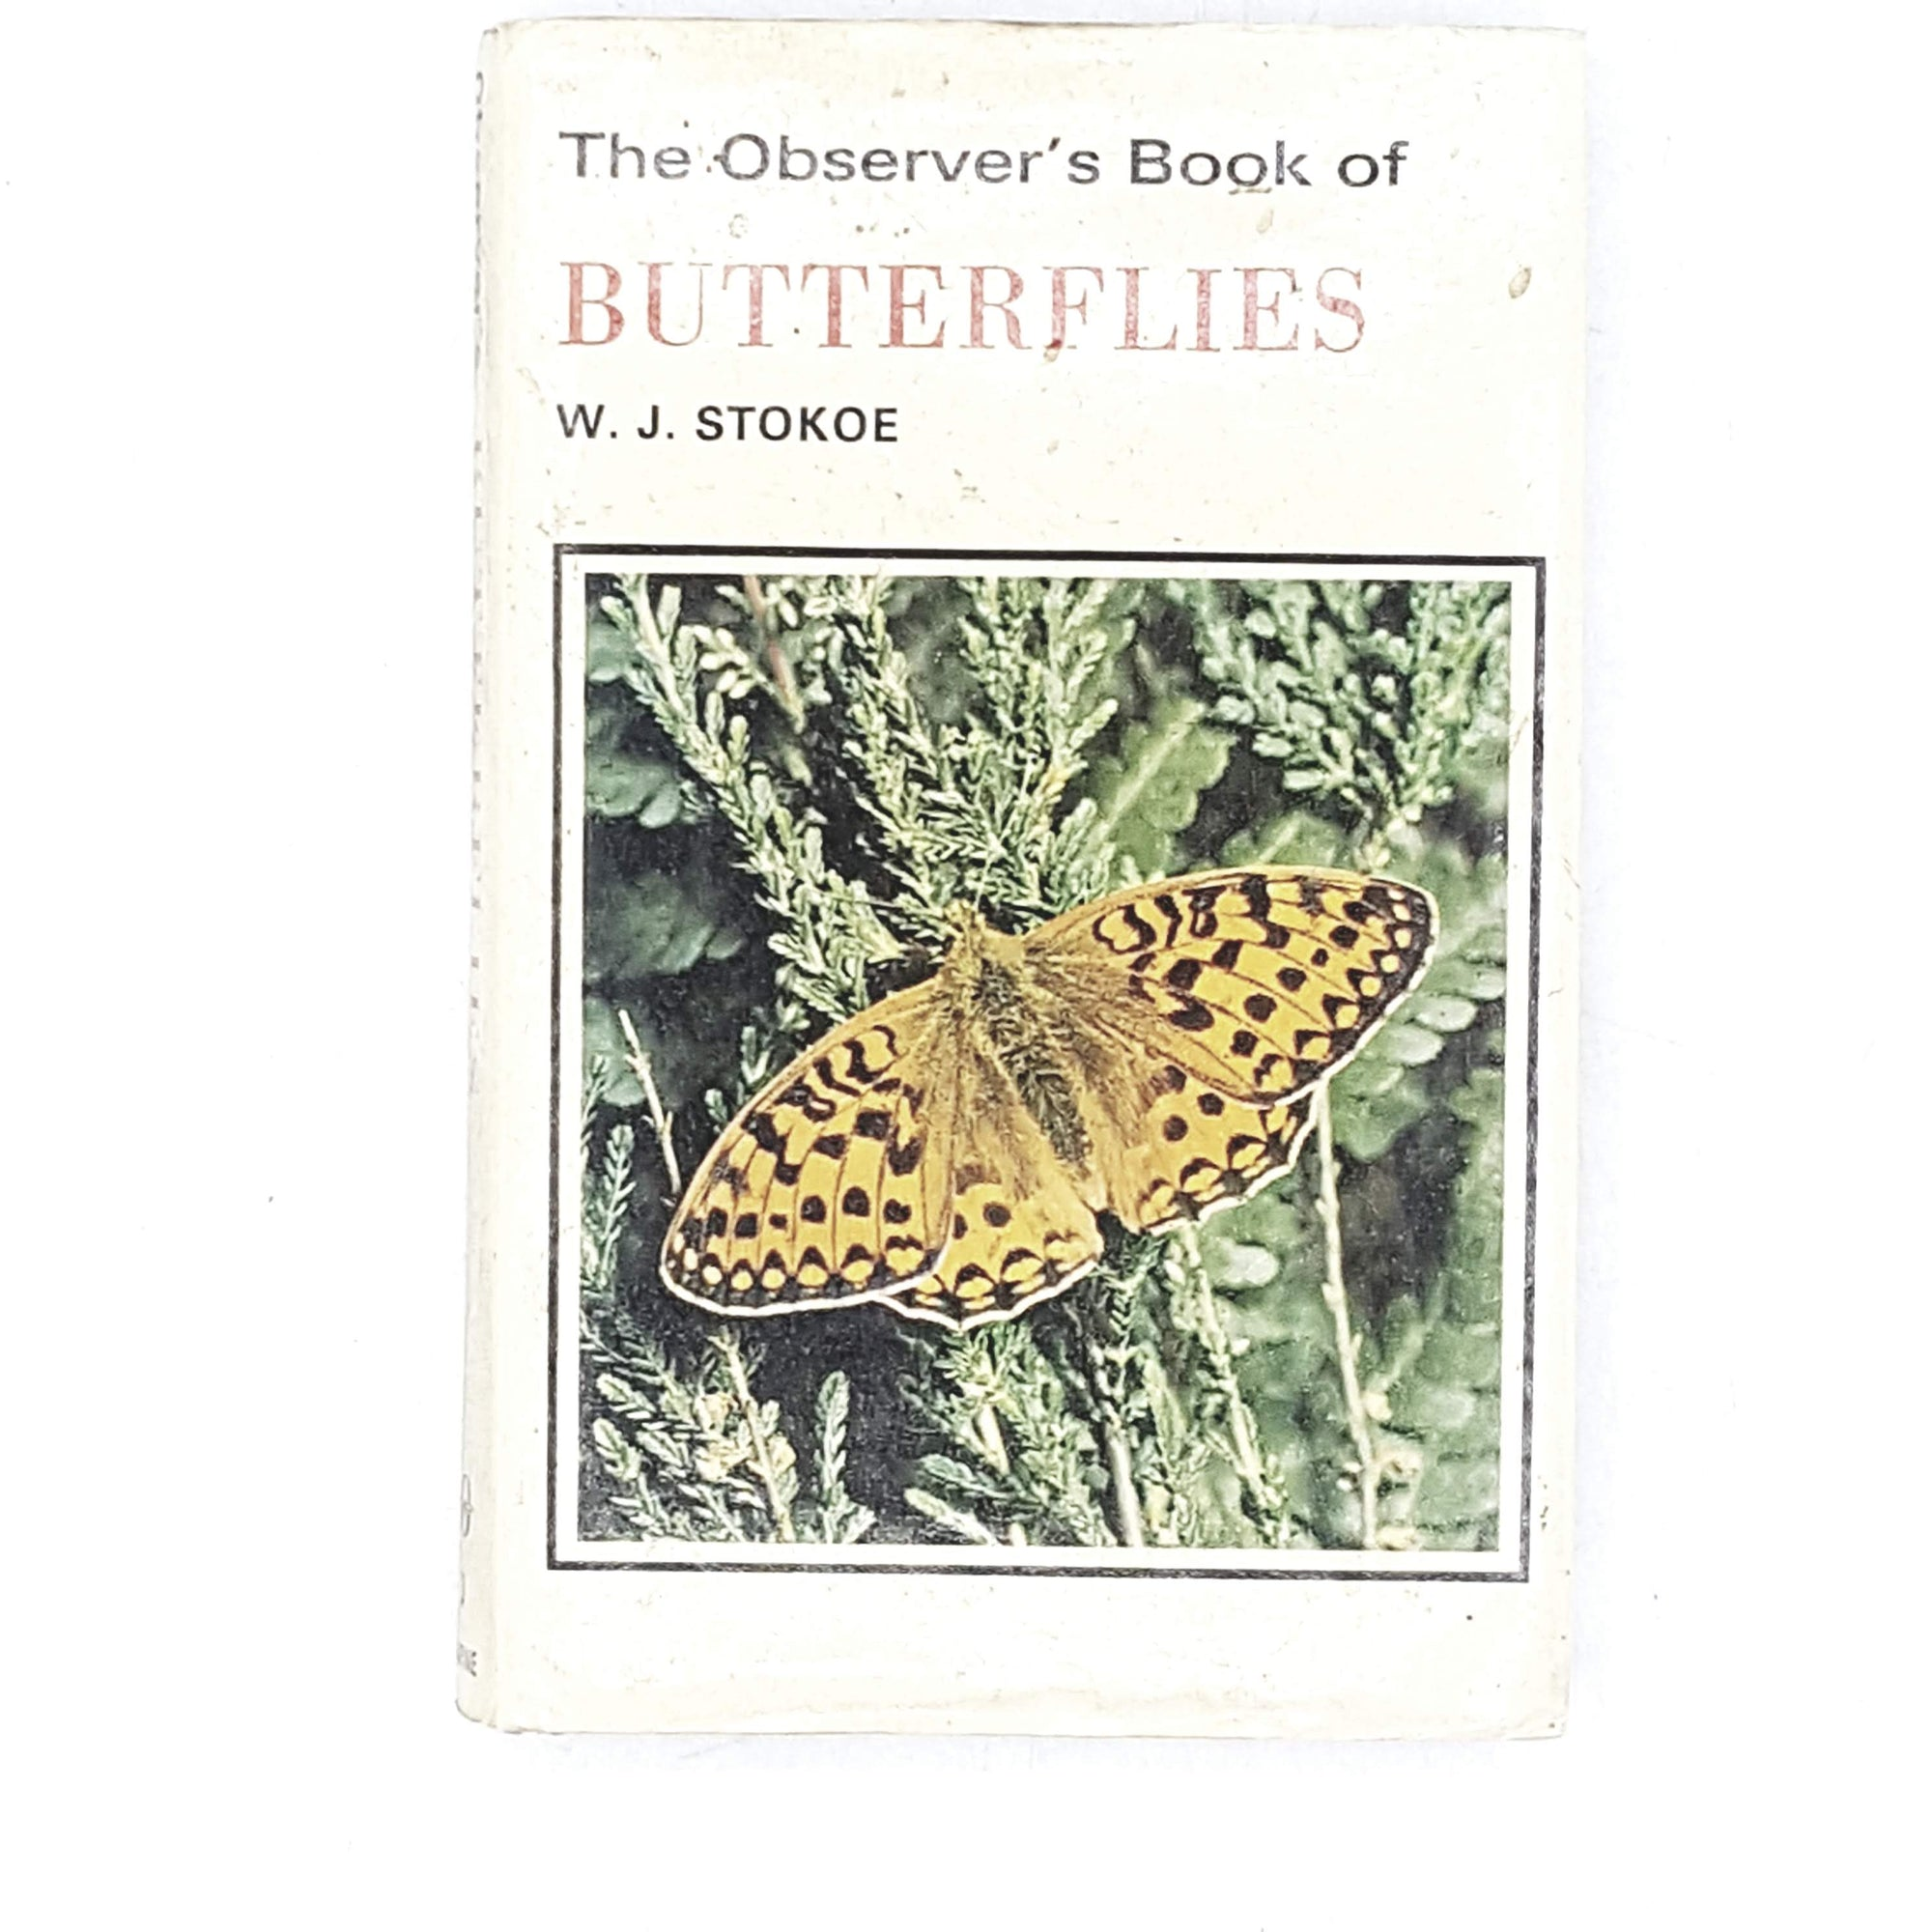 observers-book-of-butterflies-stokoe-1977-country-house-library